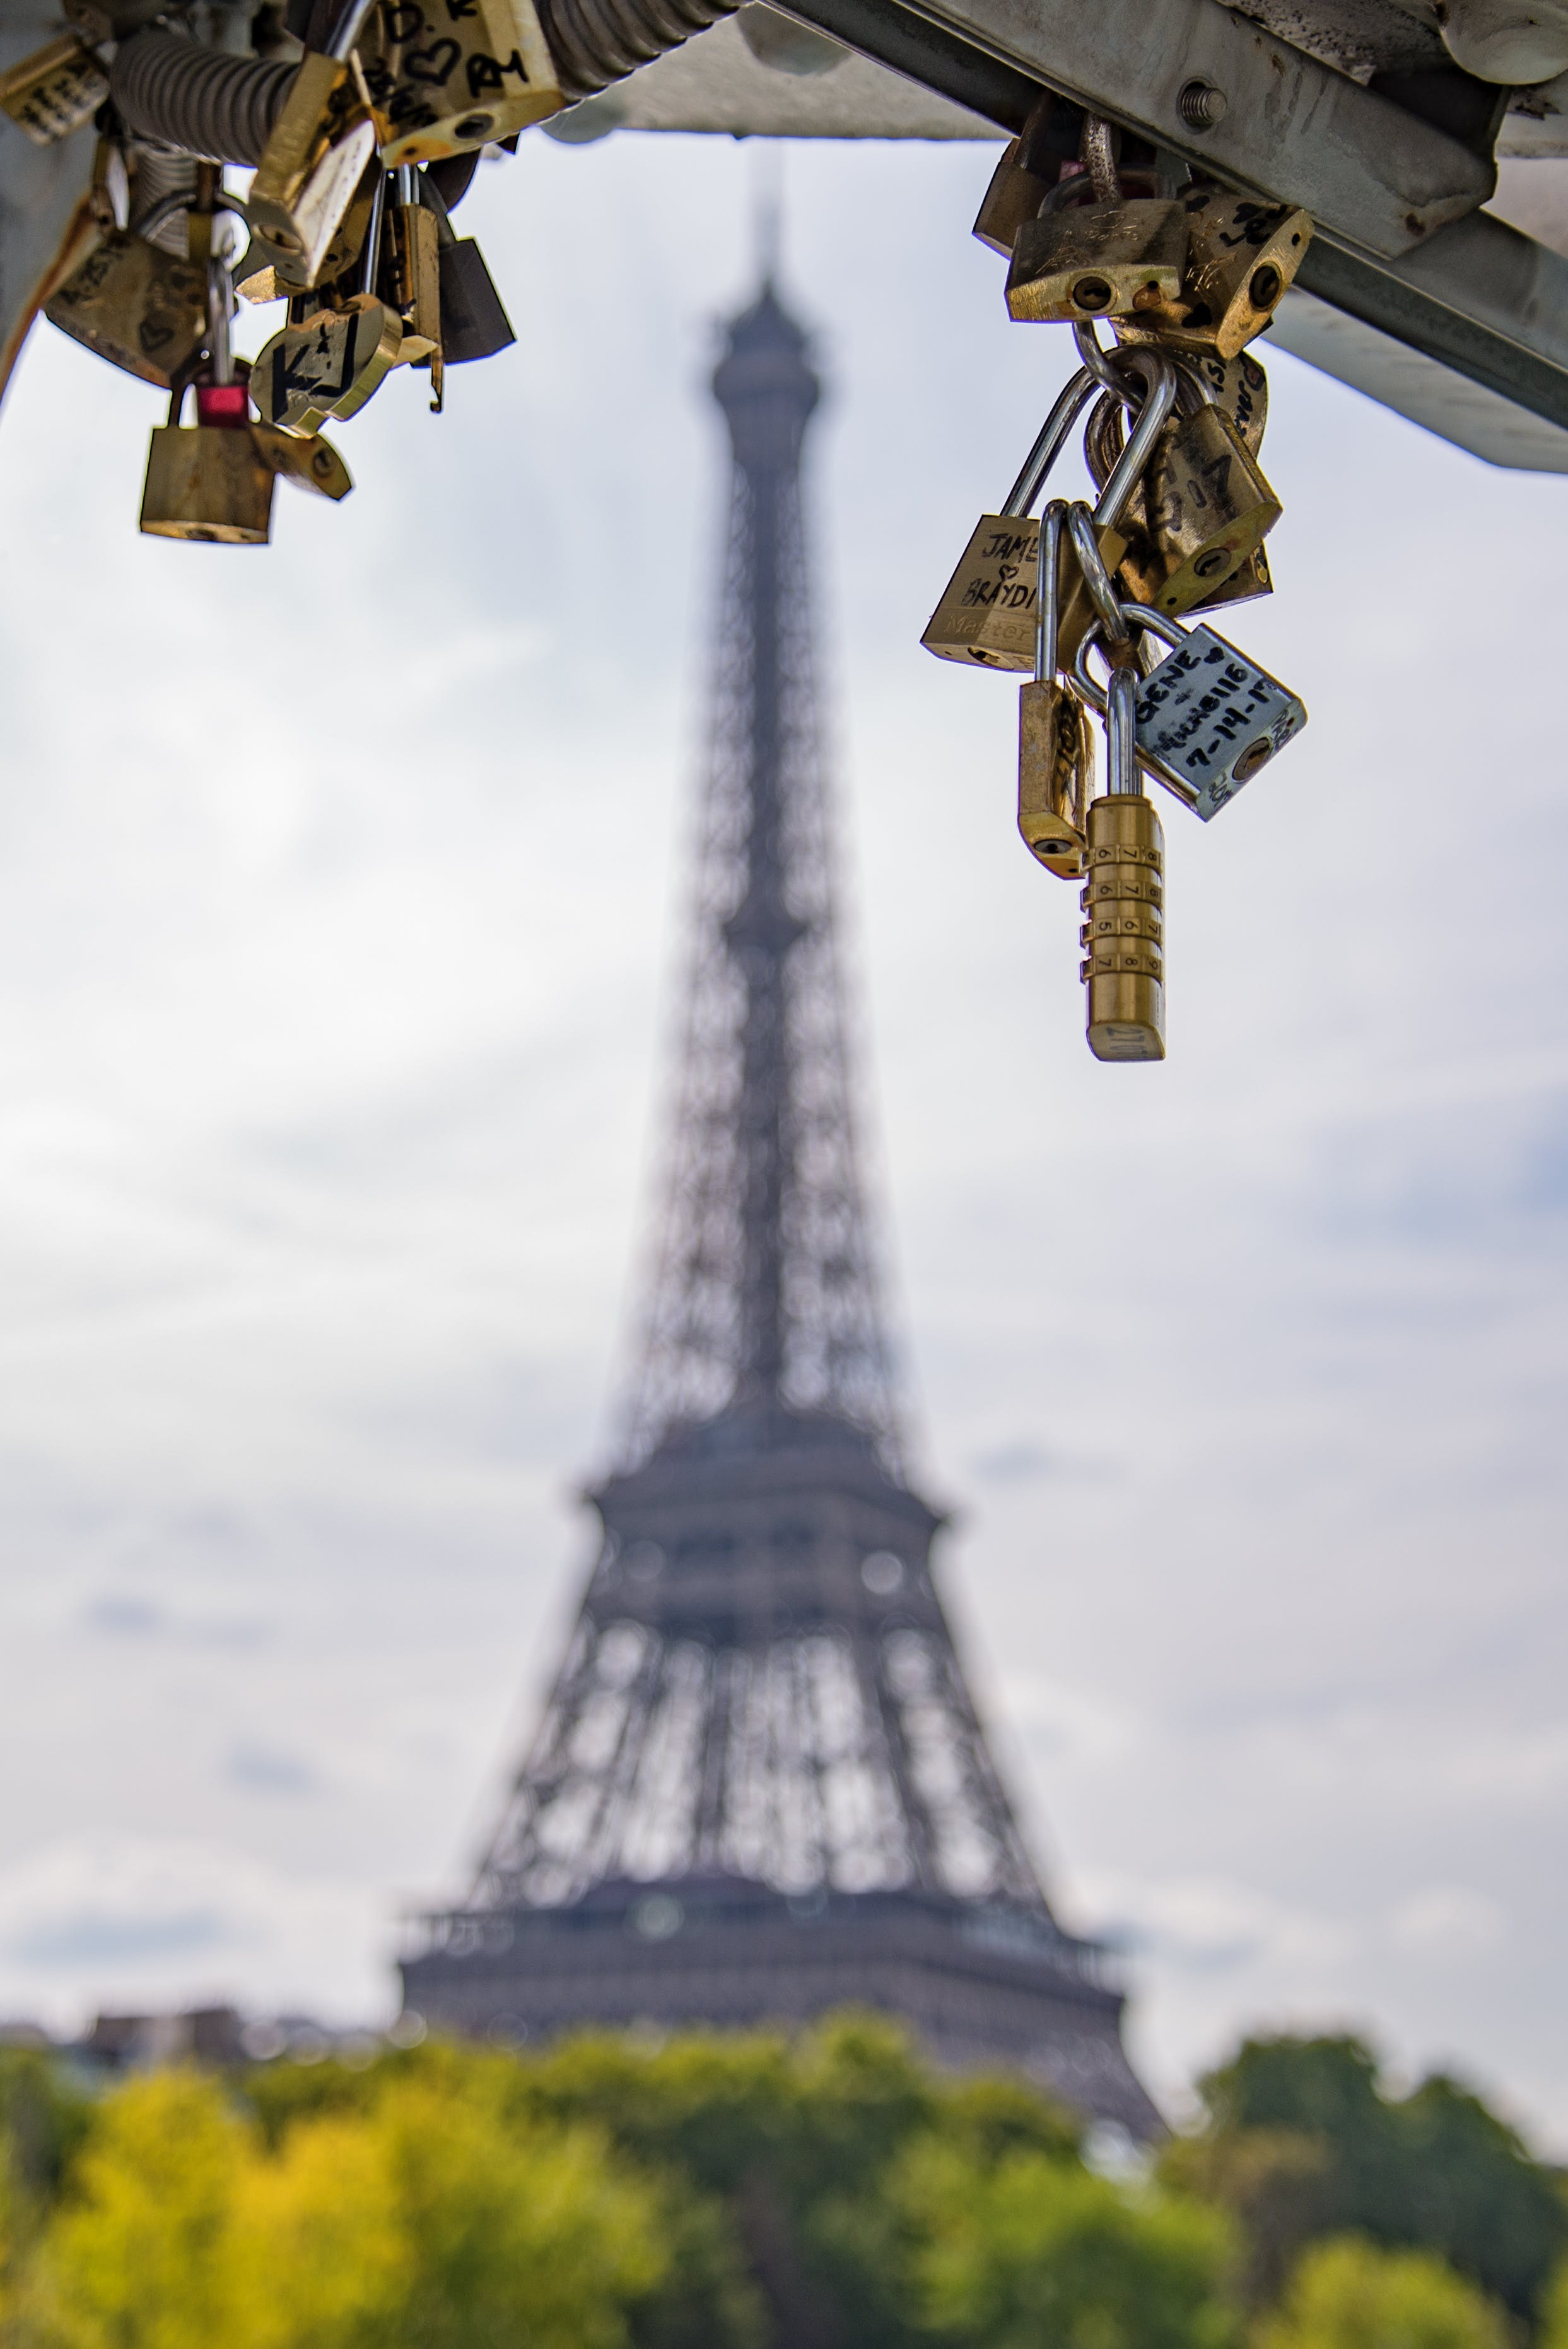 Selective Focus Photography of Padlocks With Eiffel Tower in Background